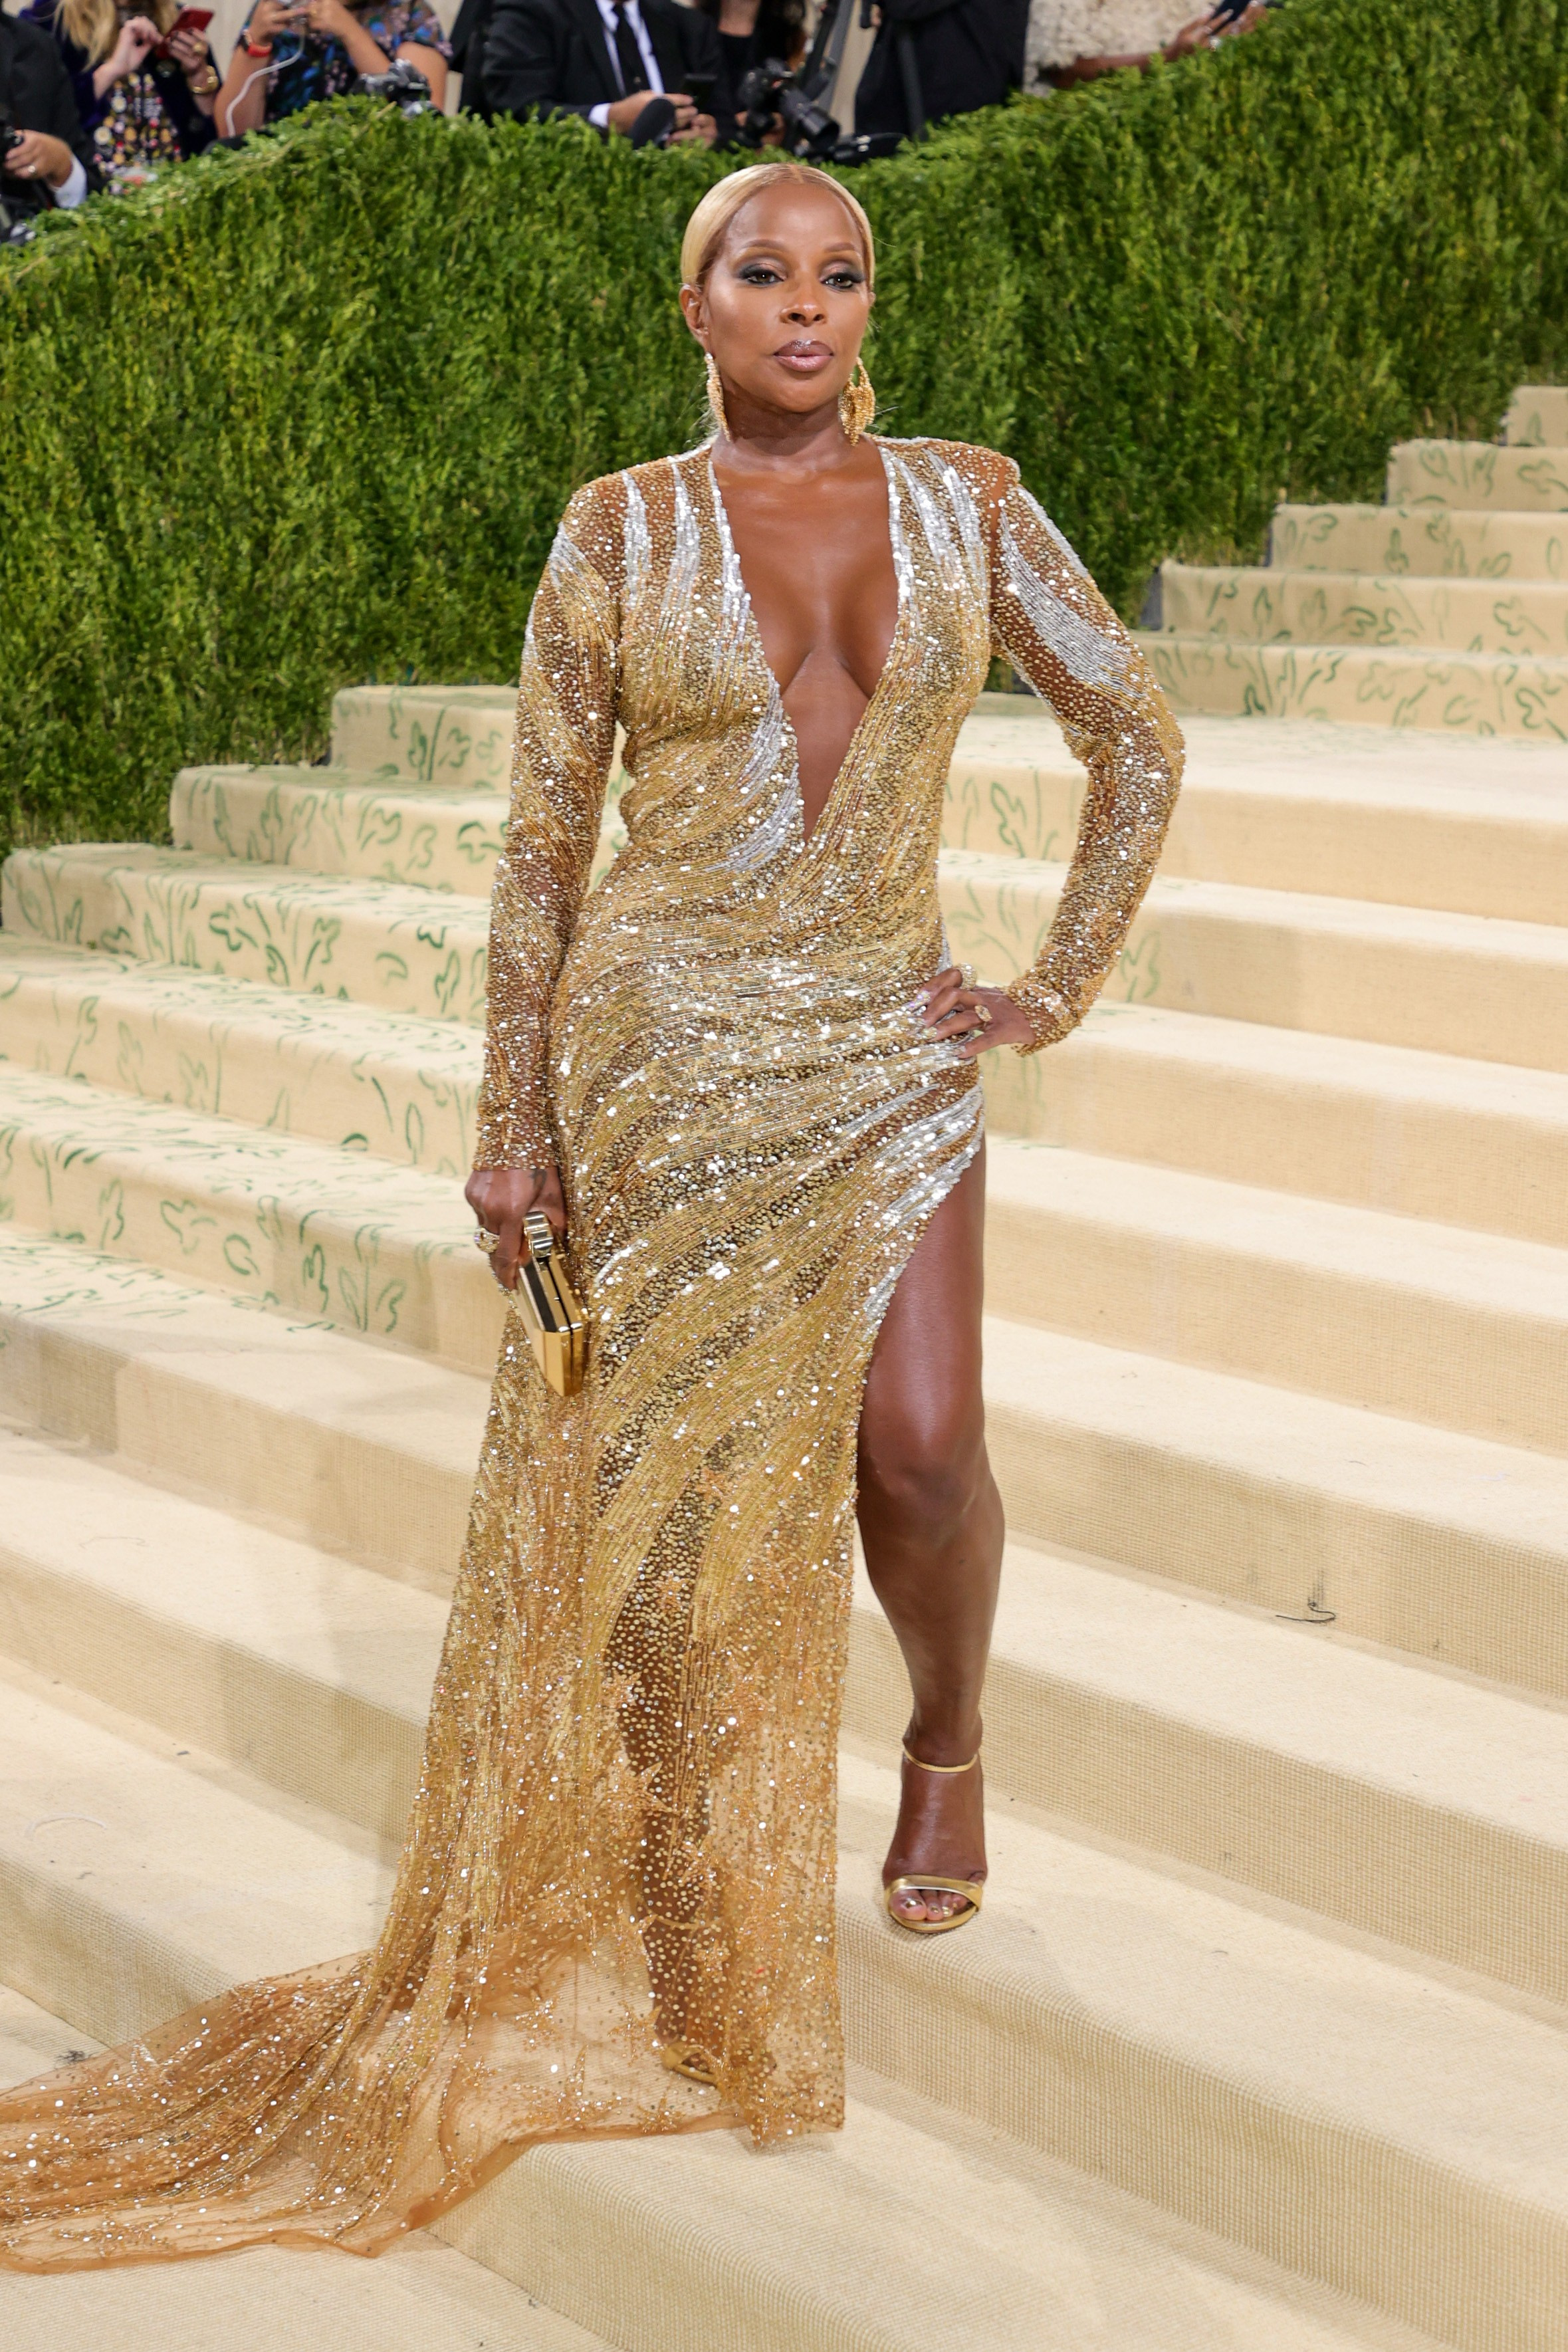 NEW YORK, NEW YORK - SEPTEMBER 13: Mary J Blige attends The 2021 Met Gala Celebrating In America: A Lexicon Of Fashion at Metropolitan Museum of Art on September 13, 2021 in New York City. (Photo by Theo Wargo/Getty Images) (Foto: Getty Images)